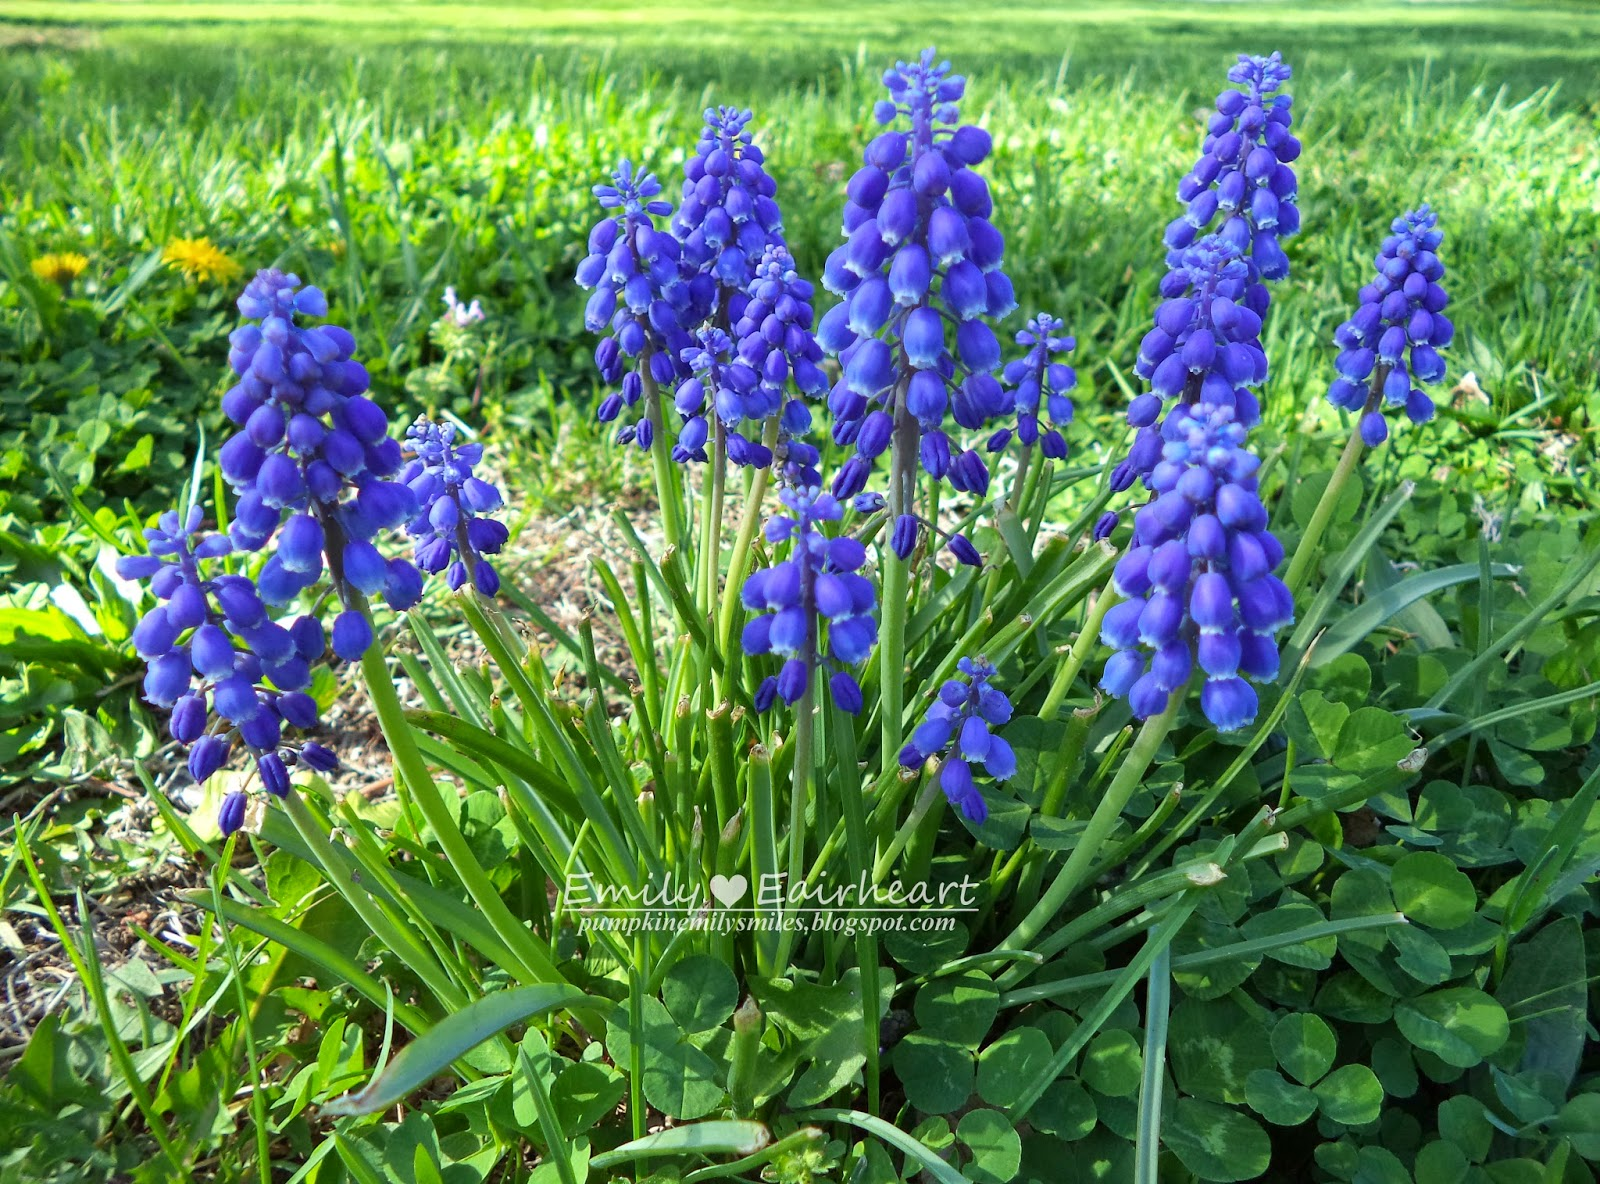 A group of Grape Hyacinths